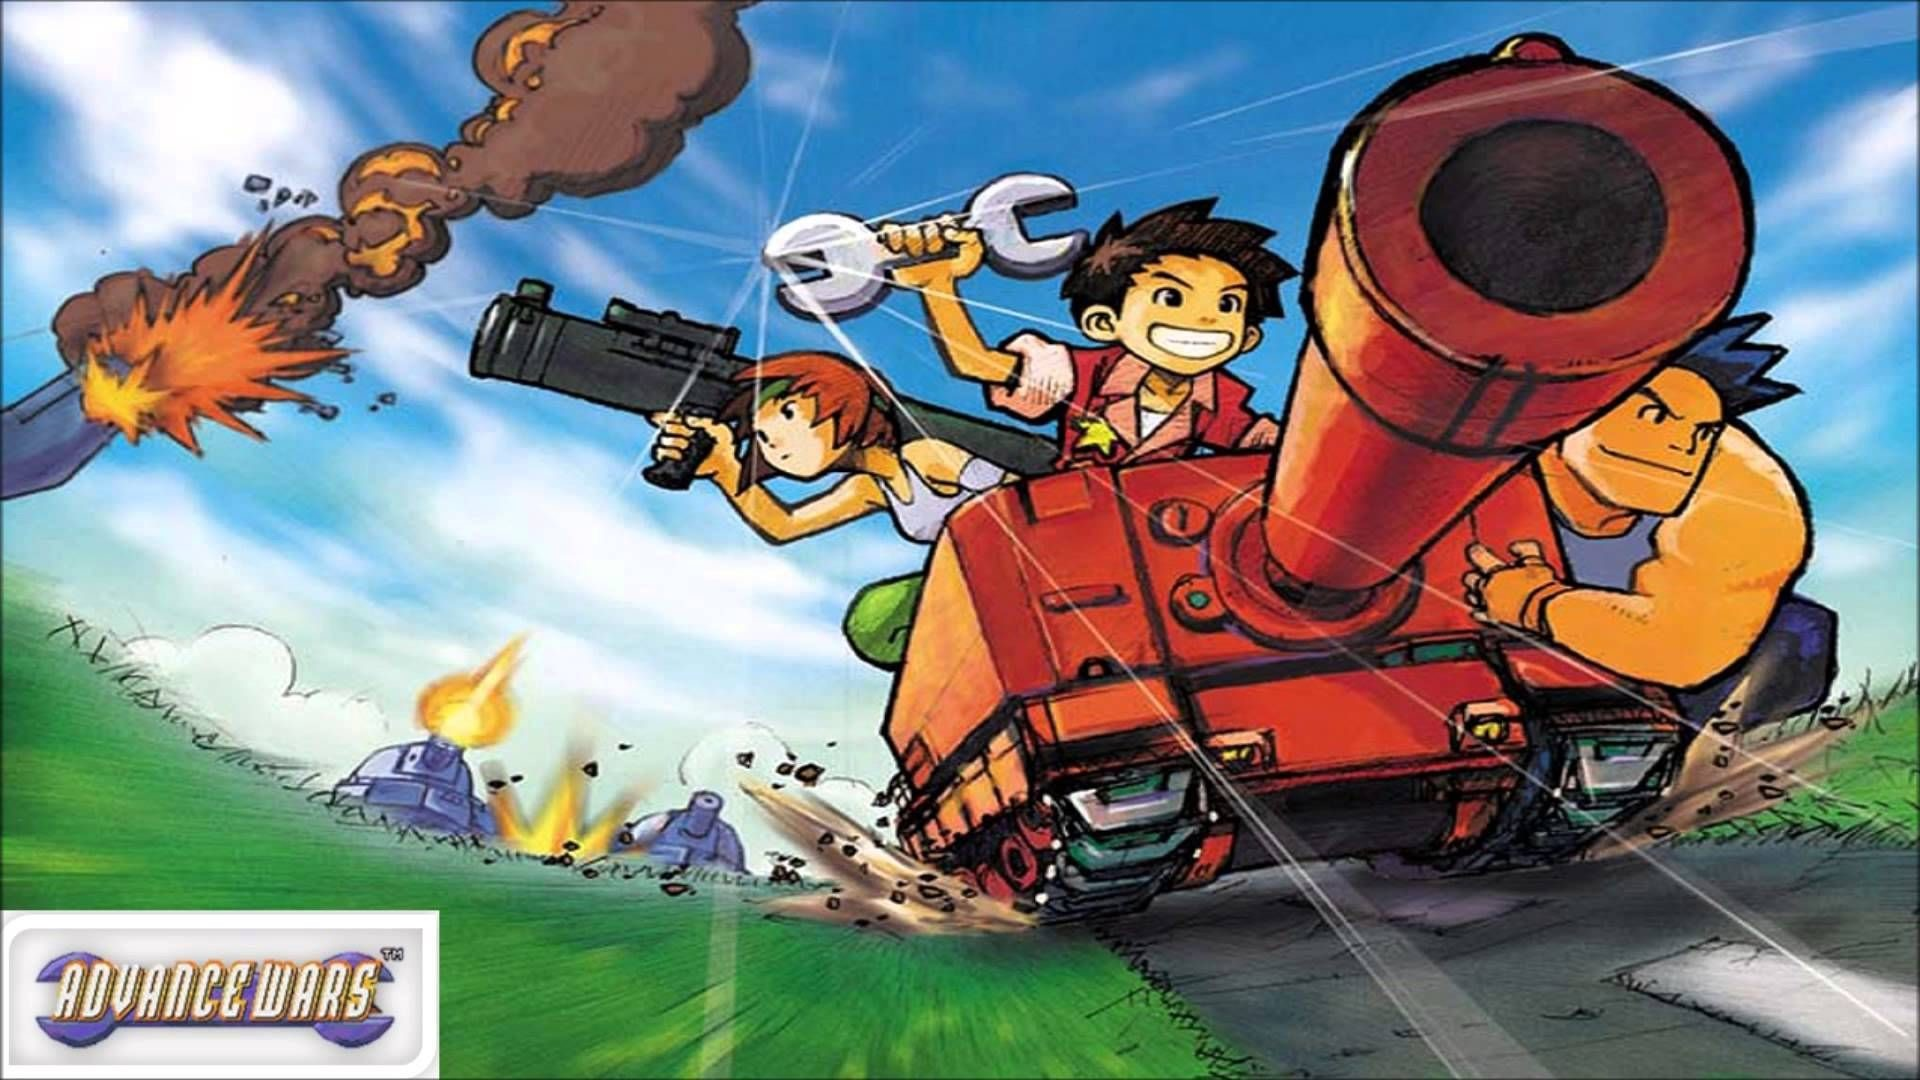 1920x1080 Happy anniversary advance wars gameboy advance gaming jpg  Olaf advance  wars wallpaper